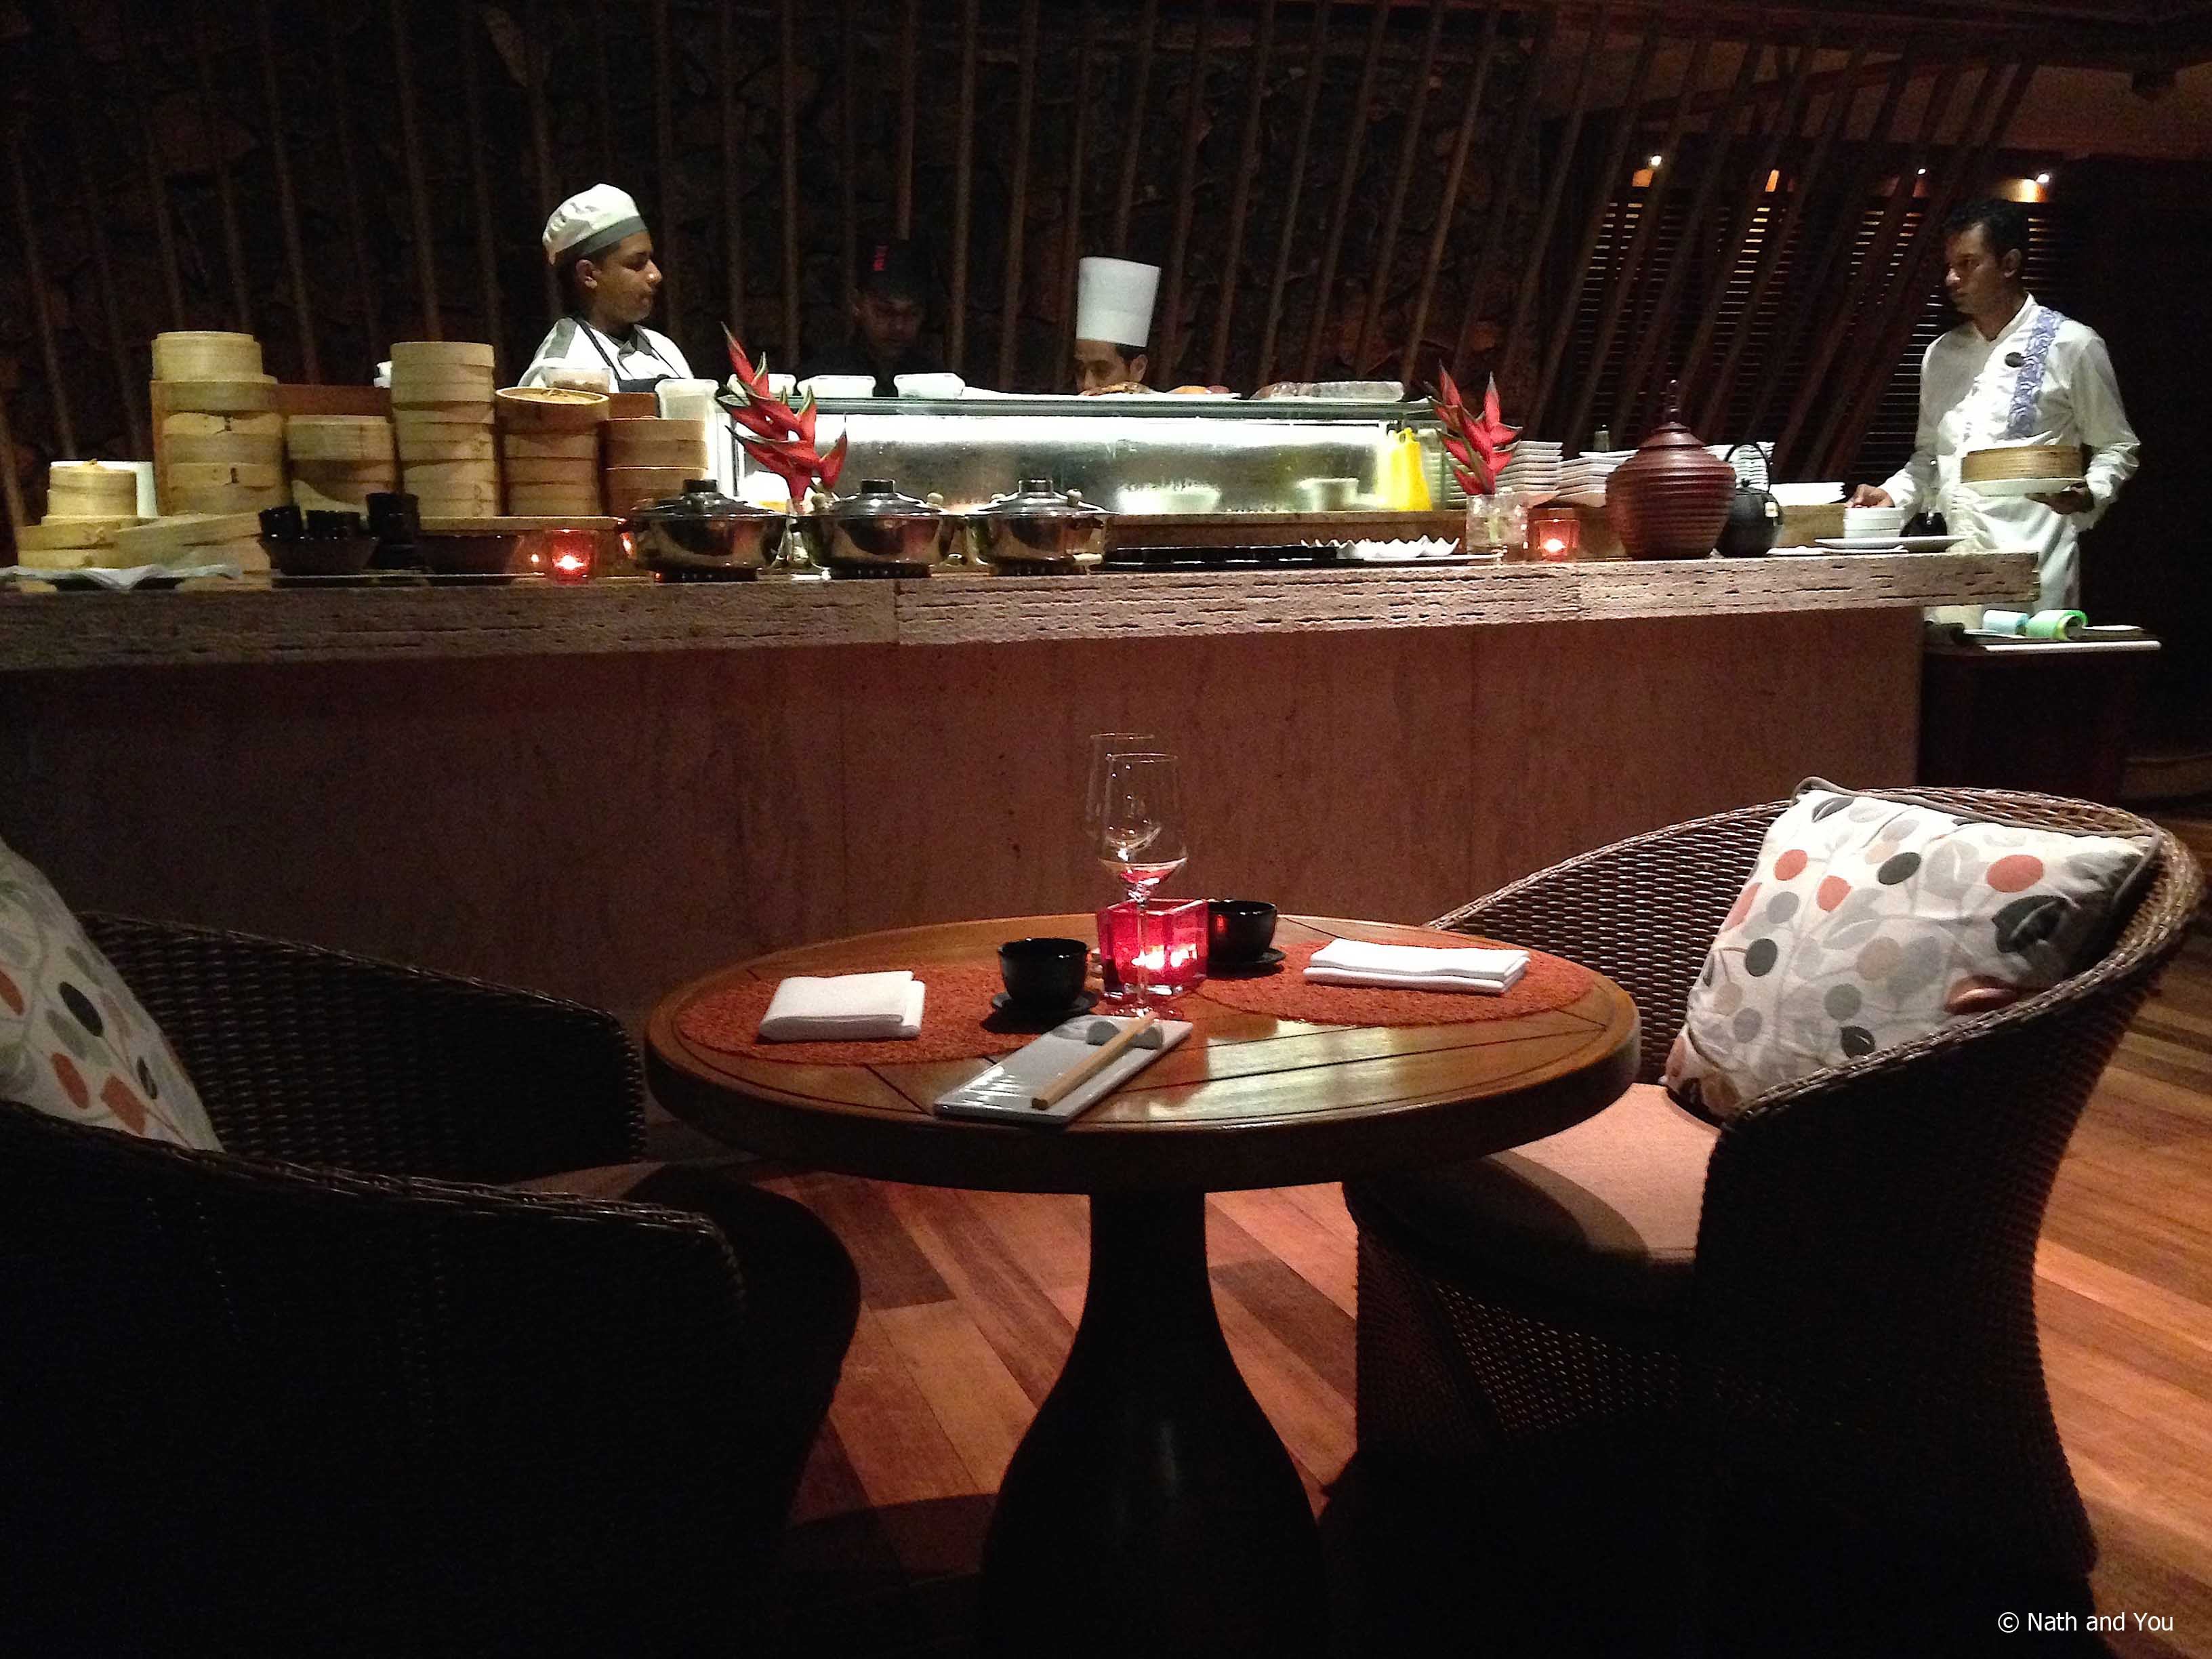 restaurant-asiatique-Constance-Le-Prince-Maurice-Nath-and-You